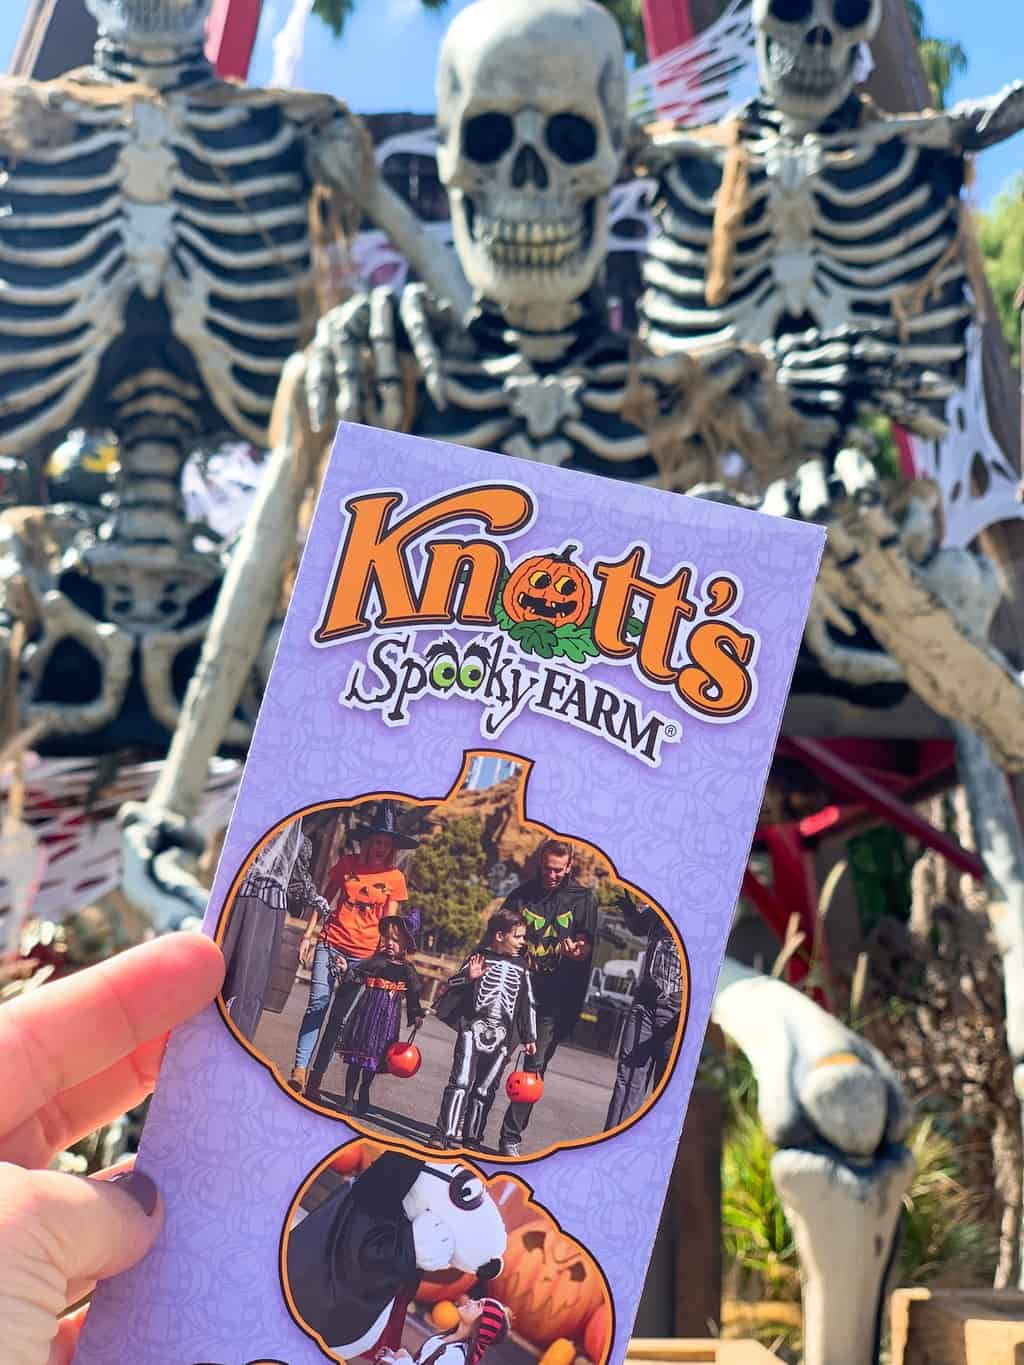 Knott's Spooky Farm Dates and Times